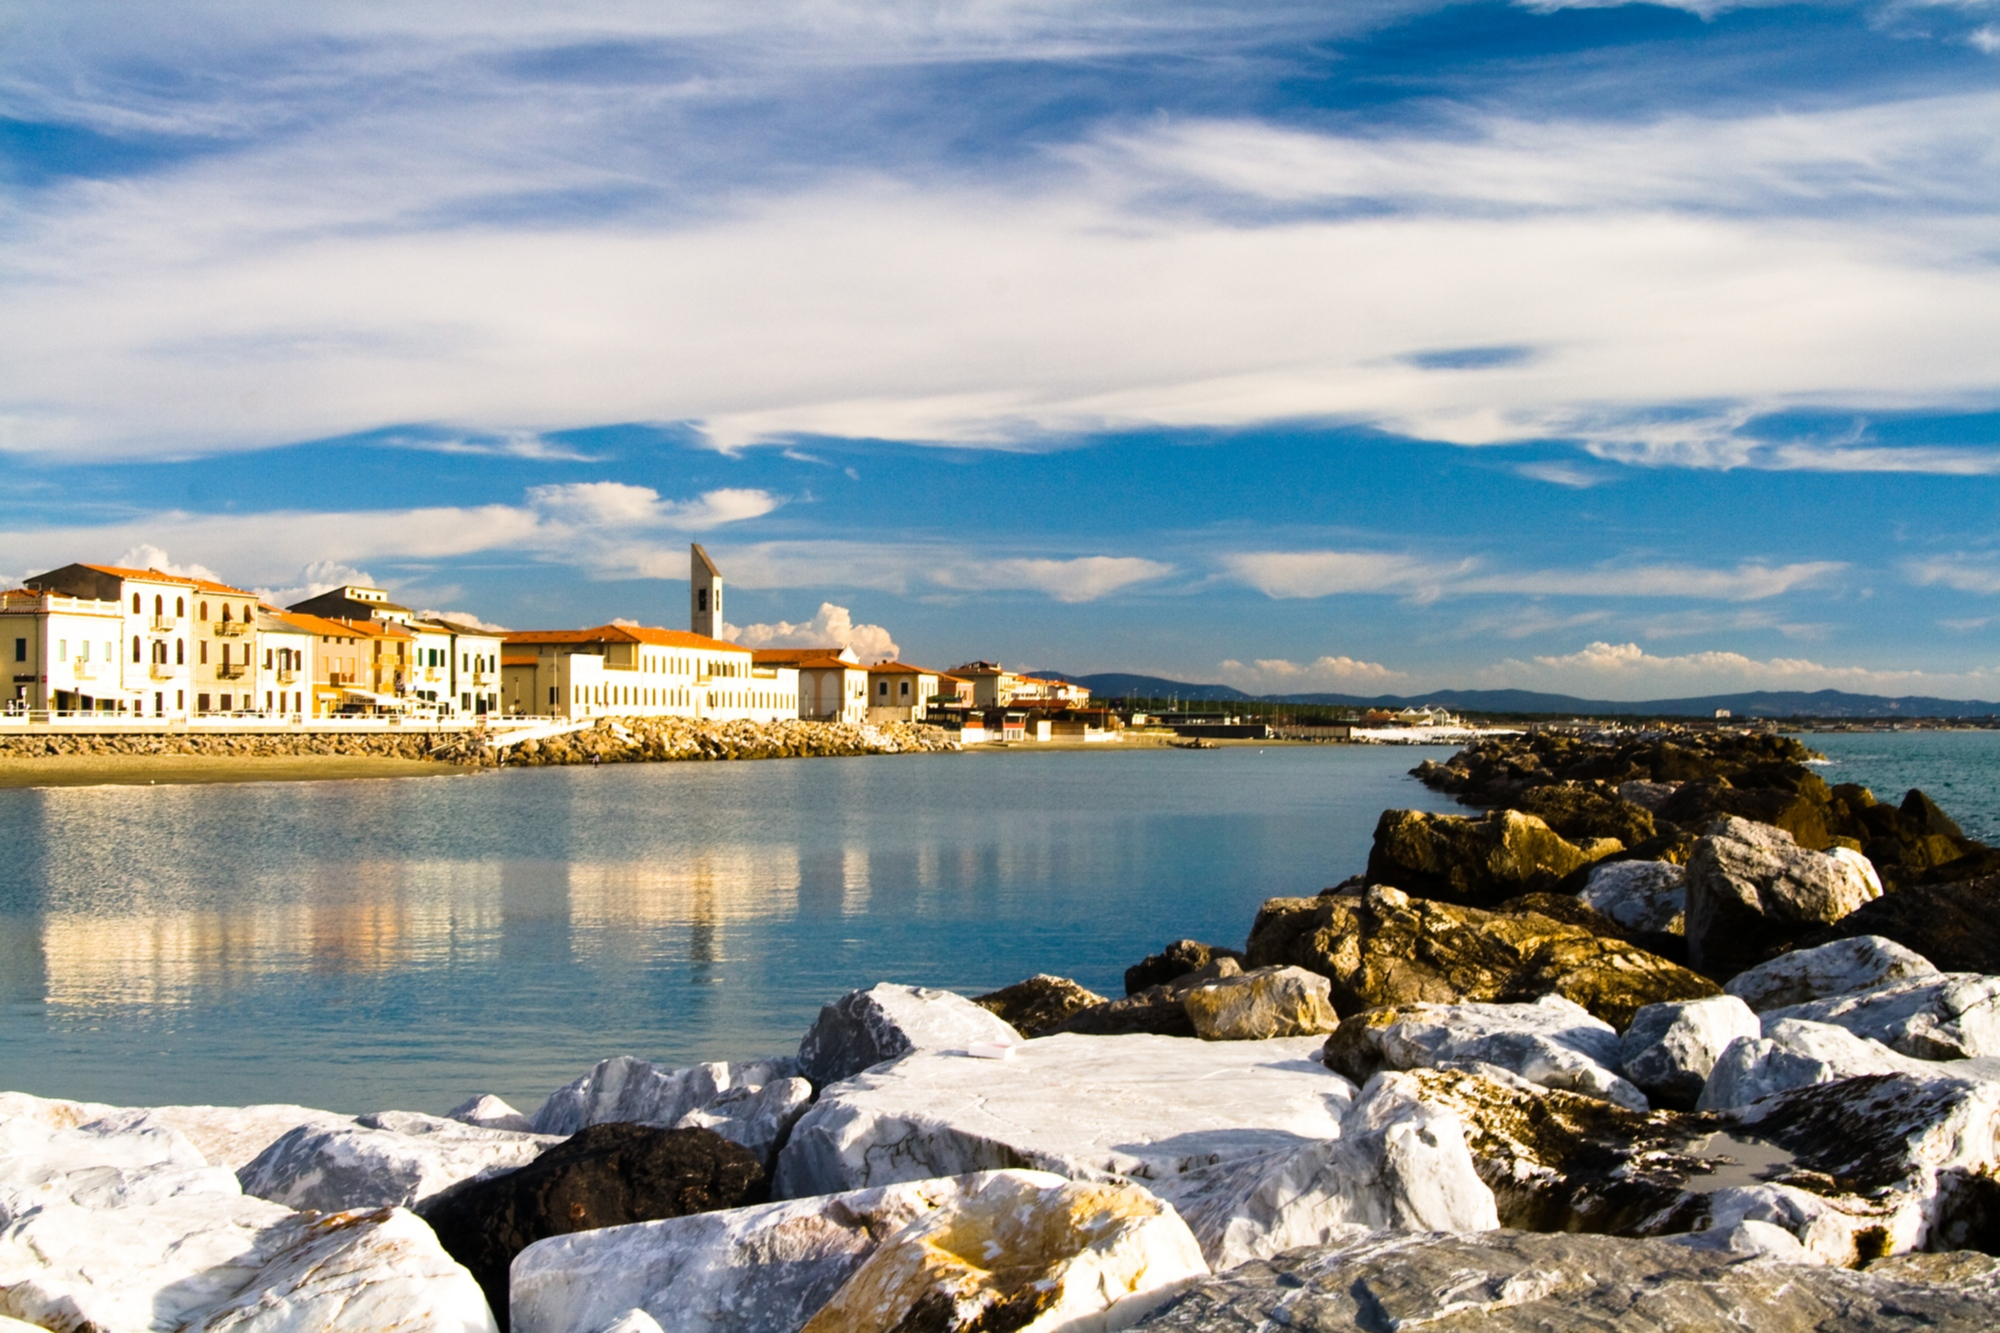 Bagno Italia Marina Di Pisa Marina Di Pisa A Beach Town Not Far From The Leaning Tower